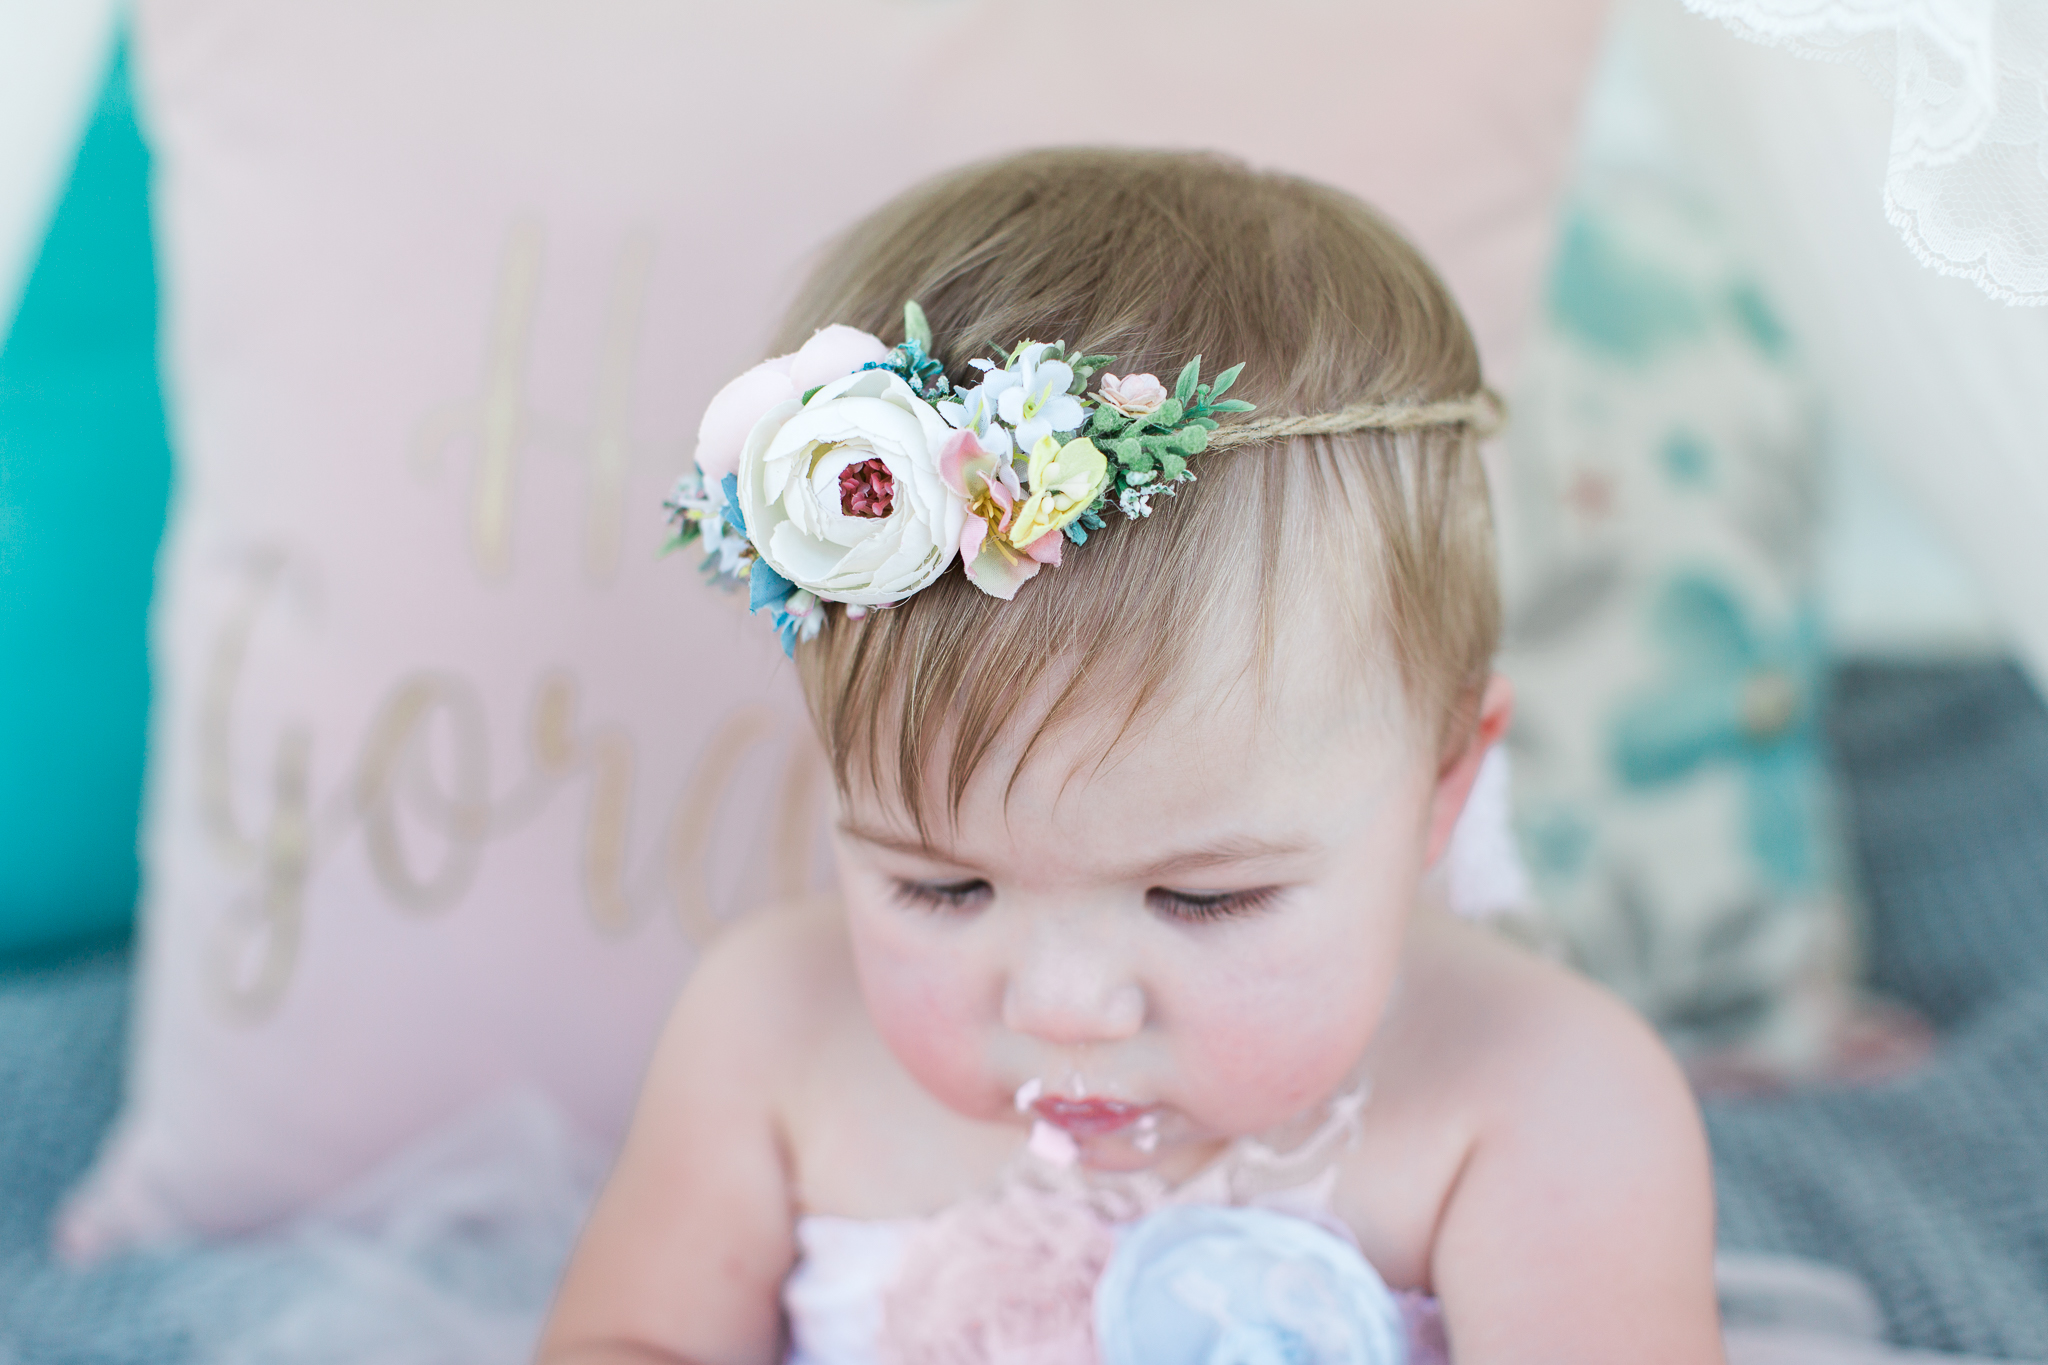 Floral headband - sizeable to 6months - 7T  $10